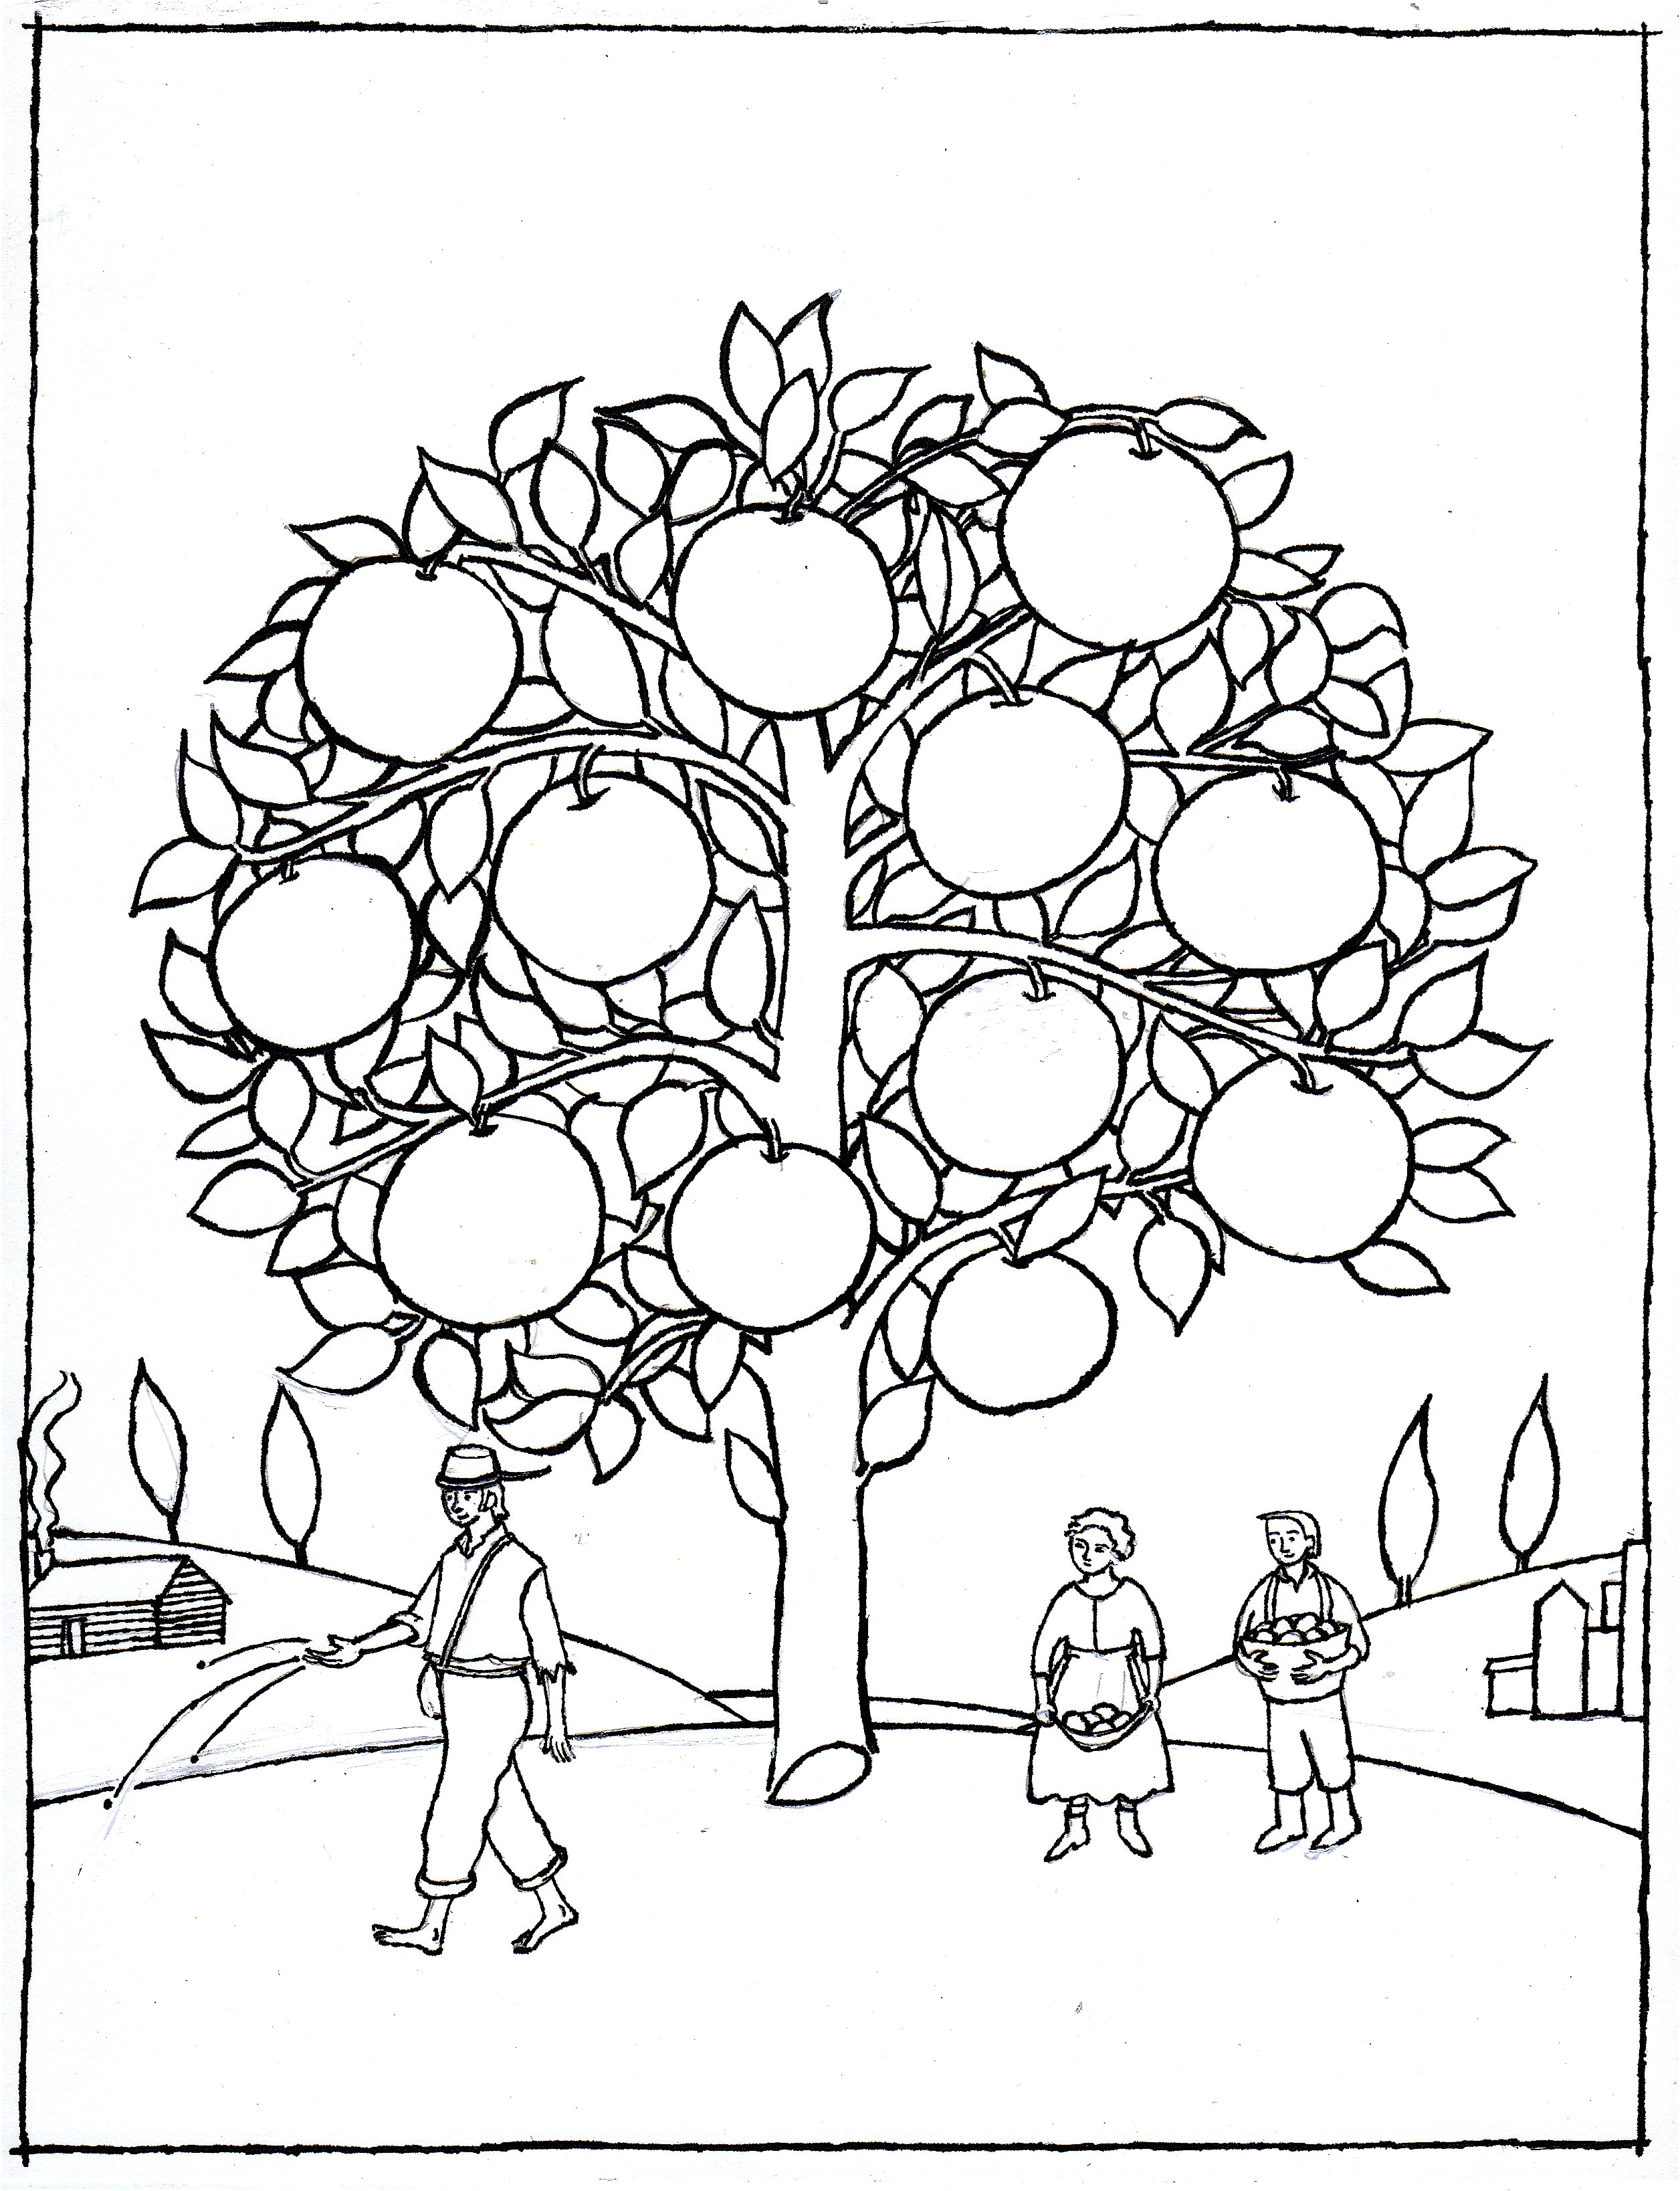 johnny appleseed coloring page - johnny appleseed coloring page